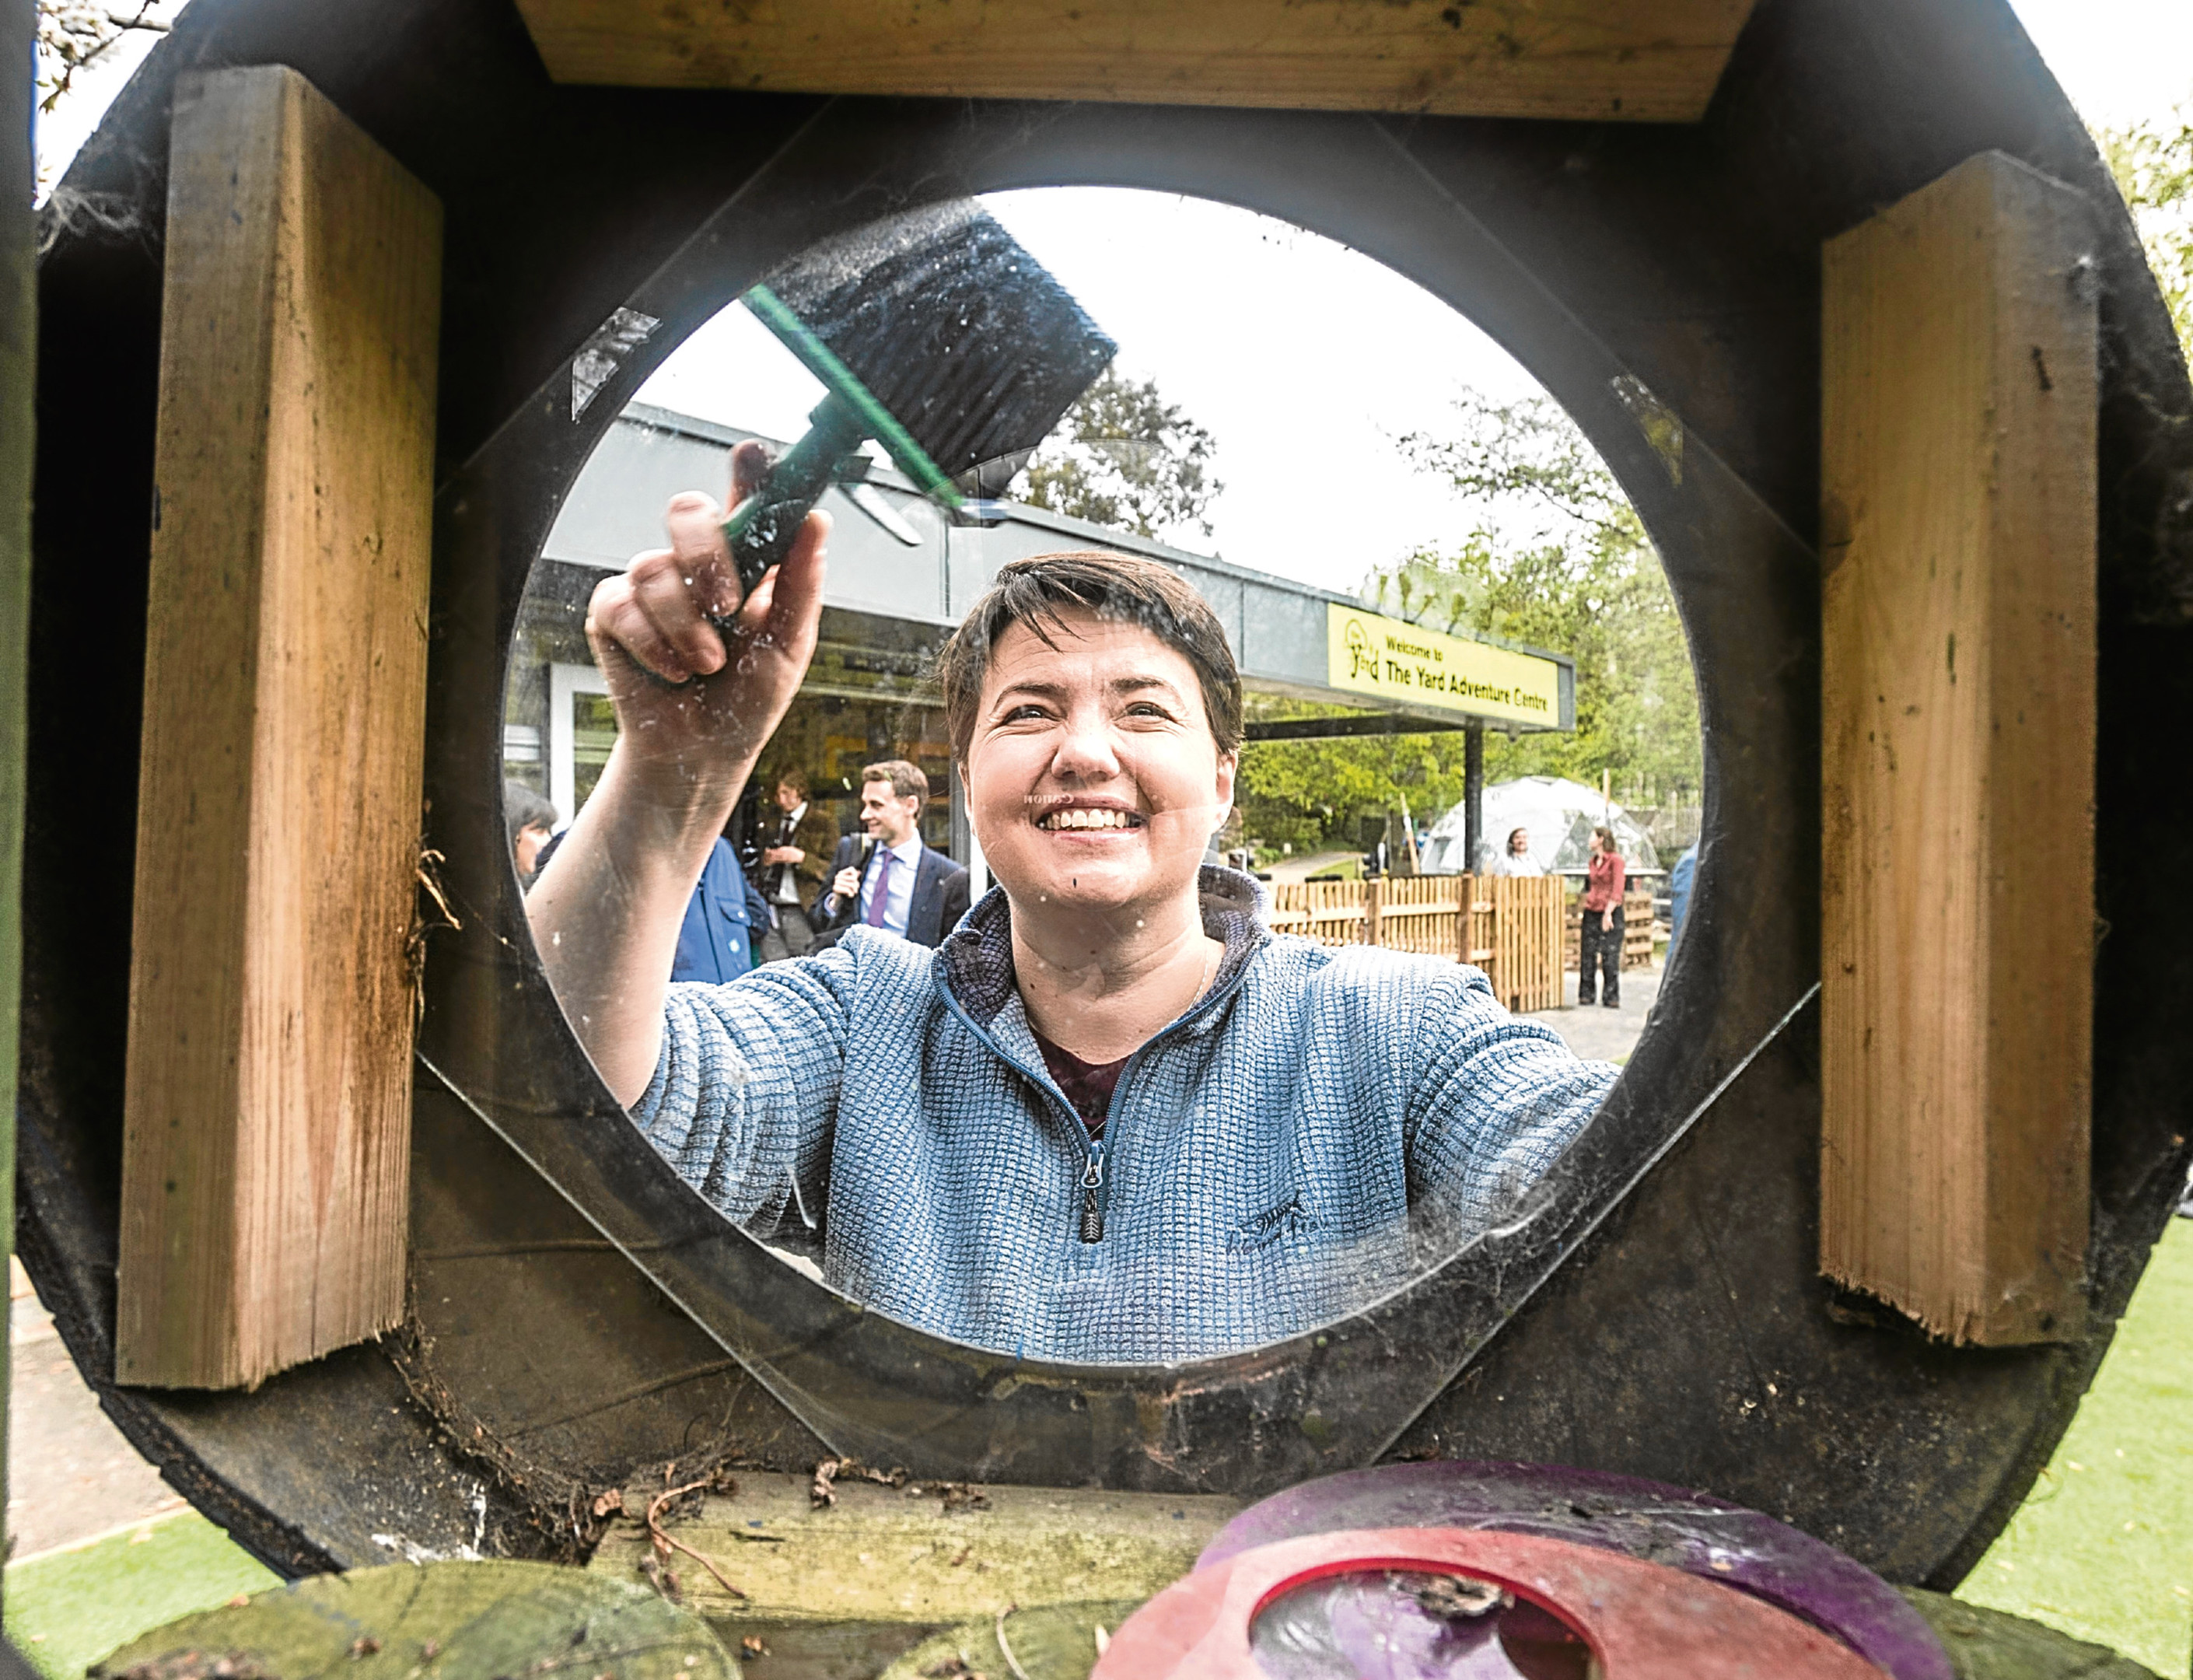 Ruth Davidson at a community playground during the launch of the Conservative Party manifesto